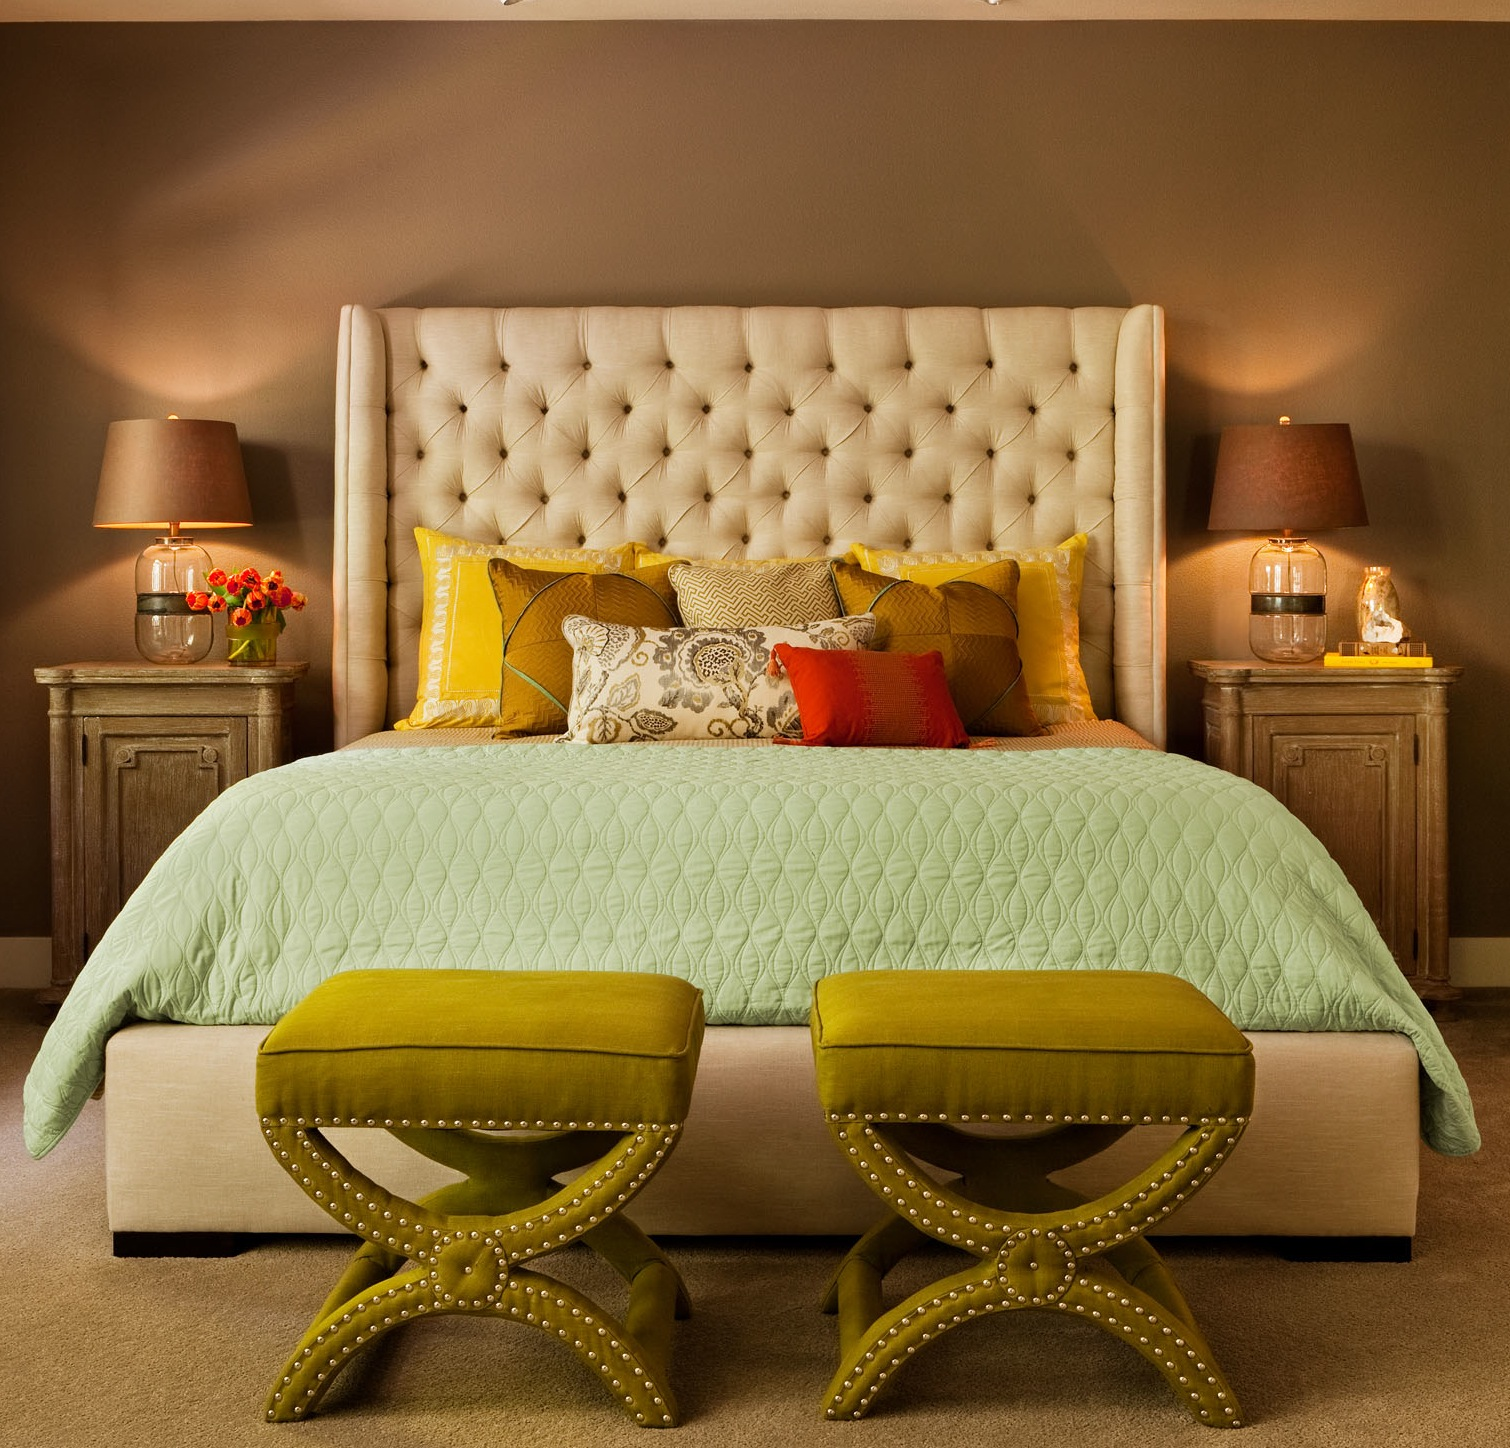 How to add color into your home at the change of the seasons, beautiful bedroom ideas, inspiration to decorate your room